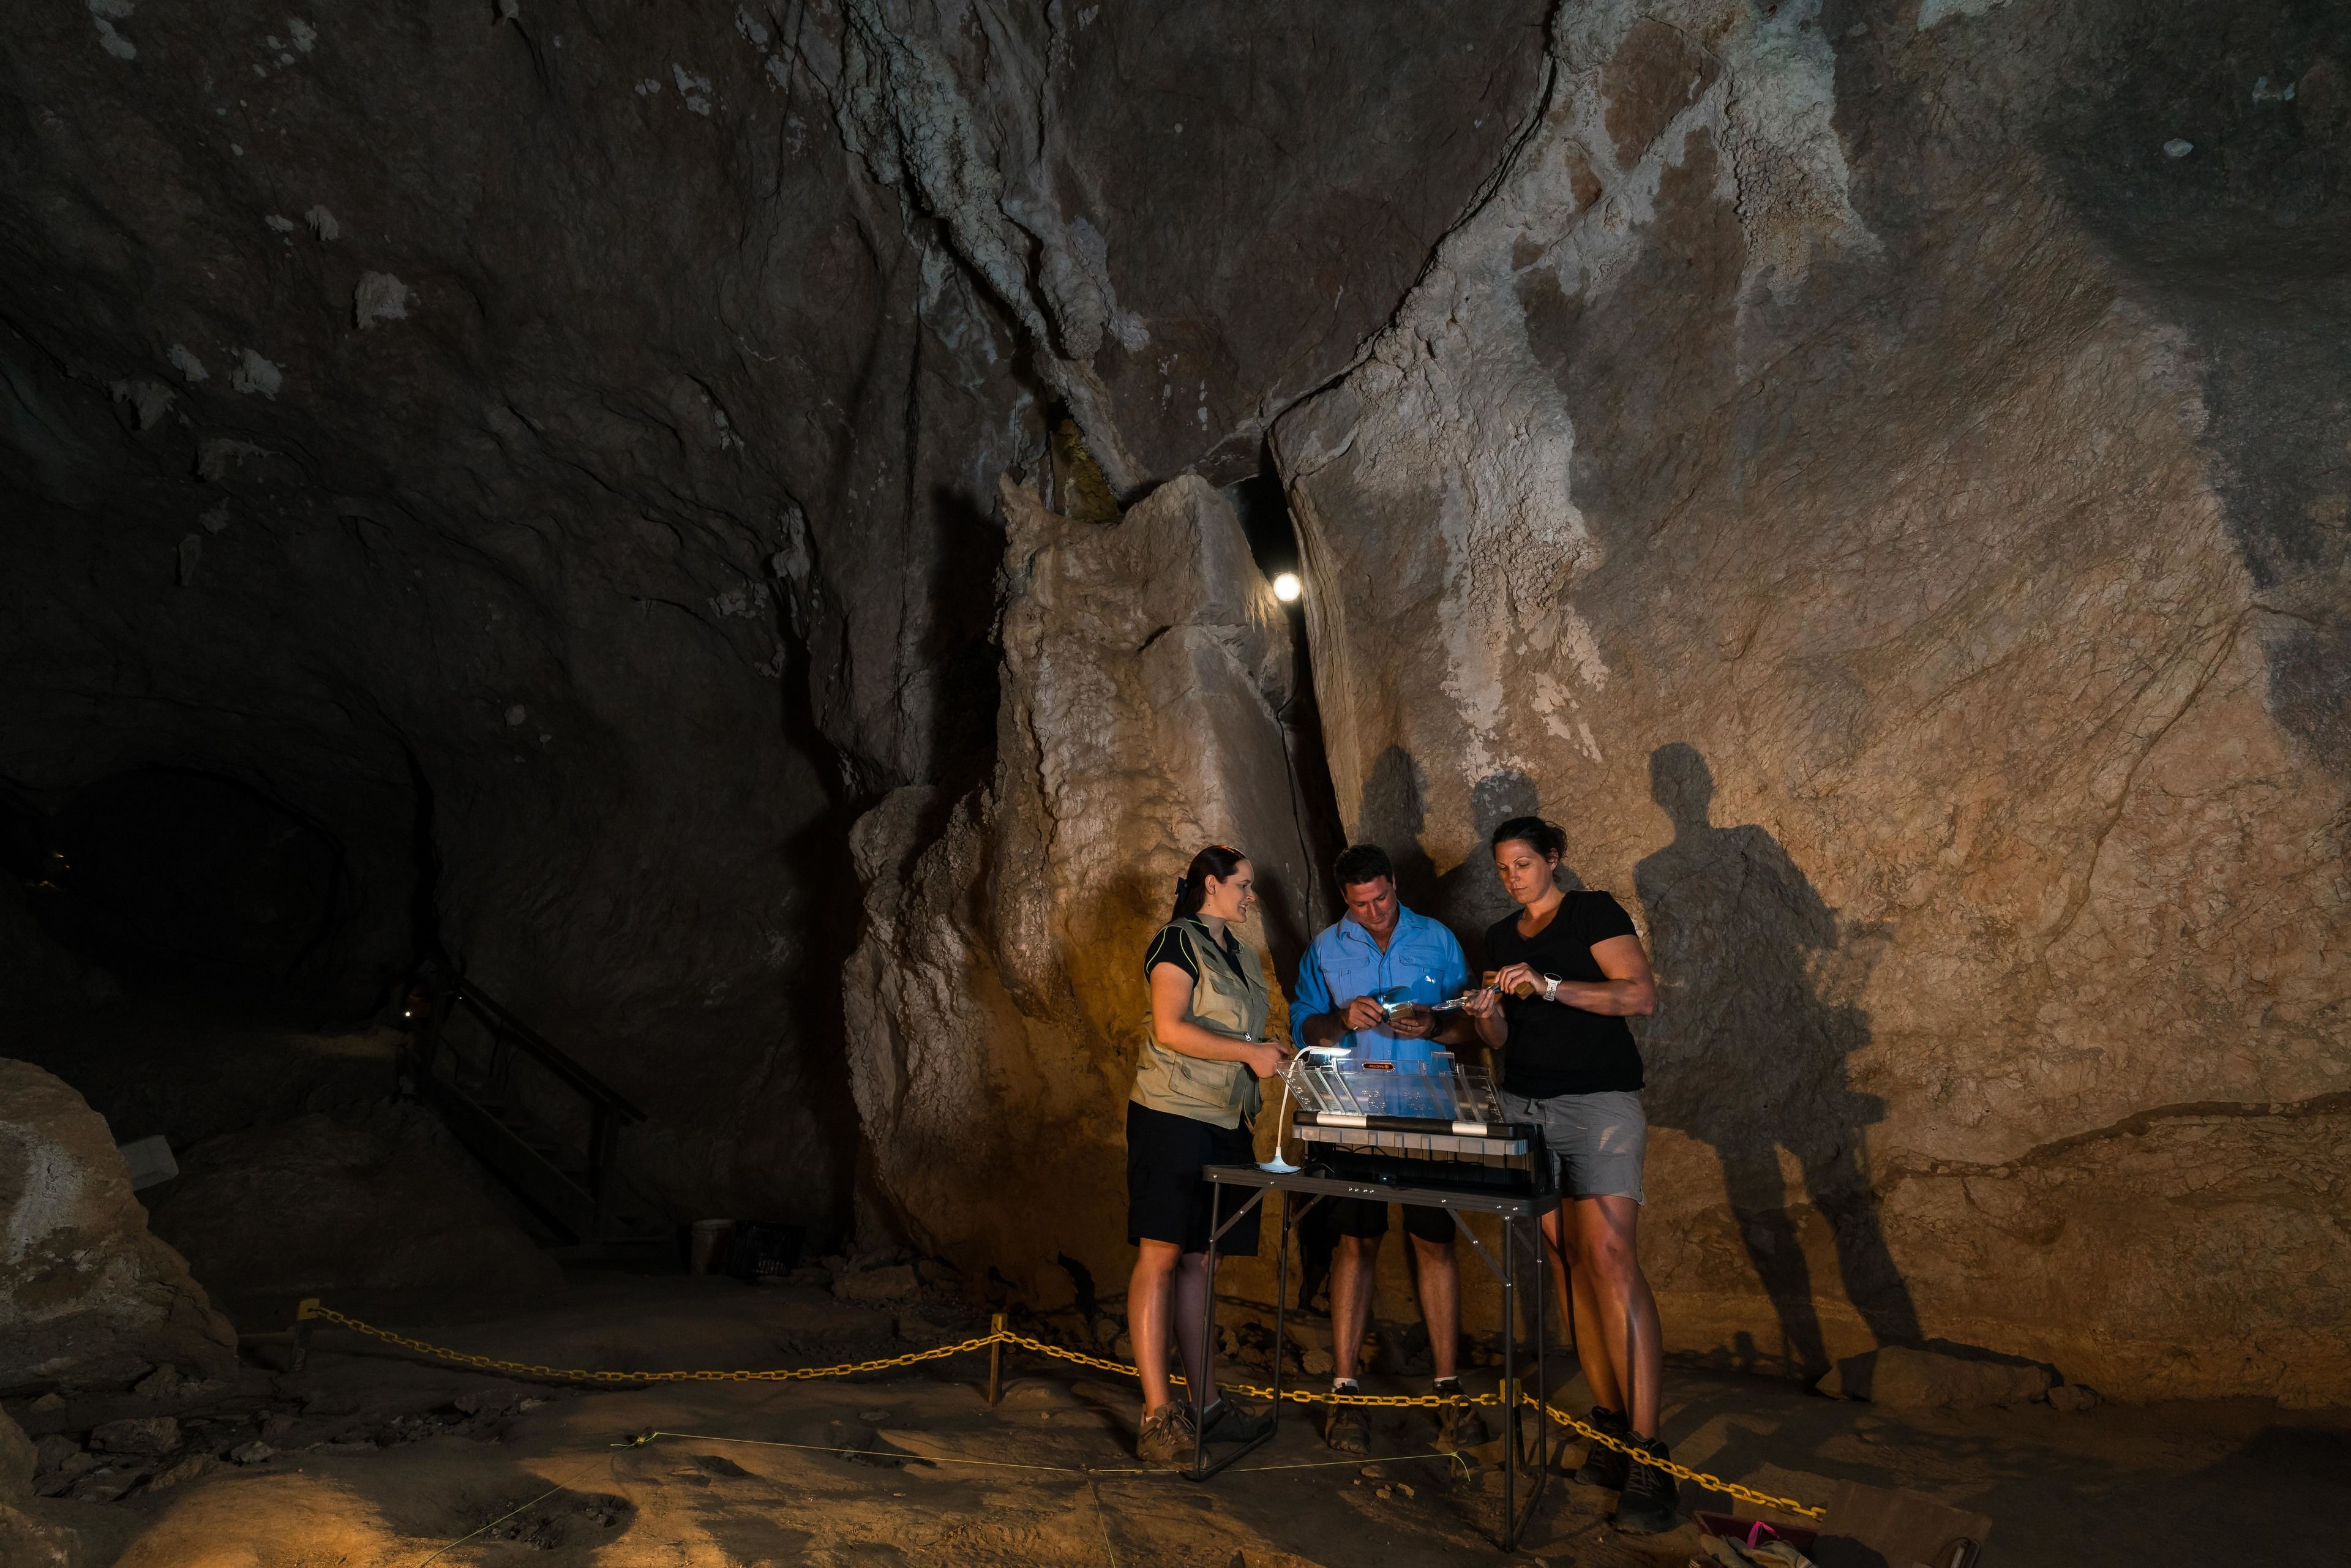 Group in Capricorn Caves in Australia